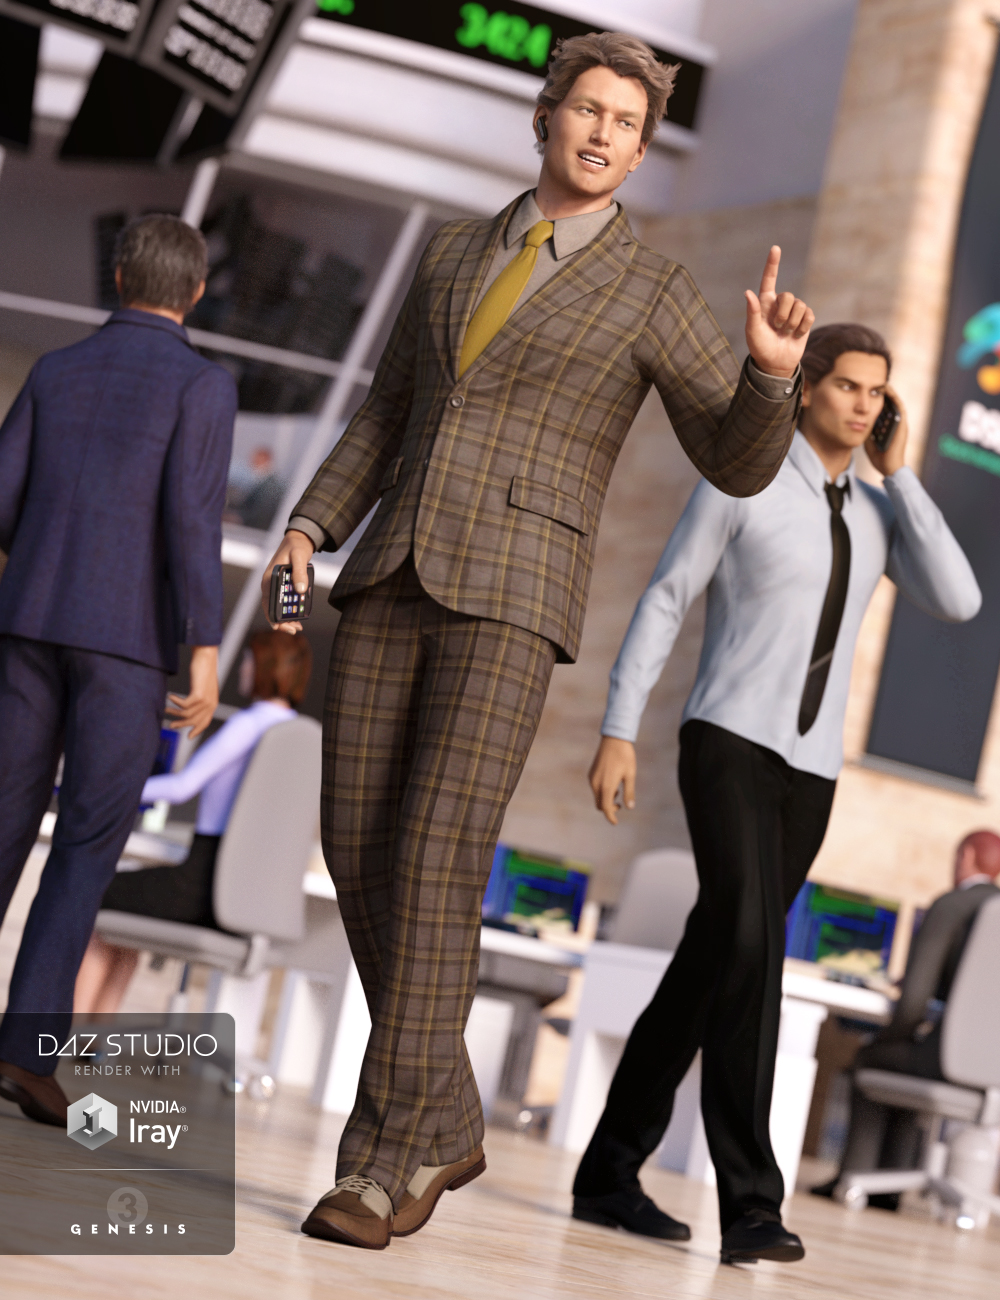 Trading Floor Outfit for Genesis 3 Male(s) by: LuthbellinaMada, 3D Models by Daz 3D